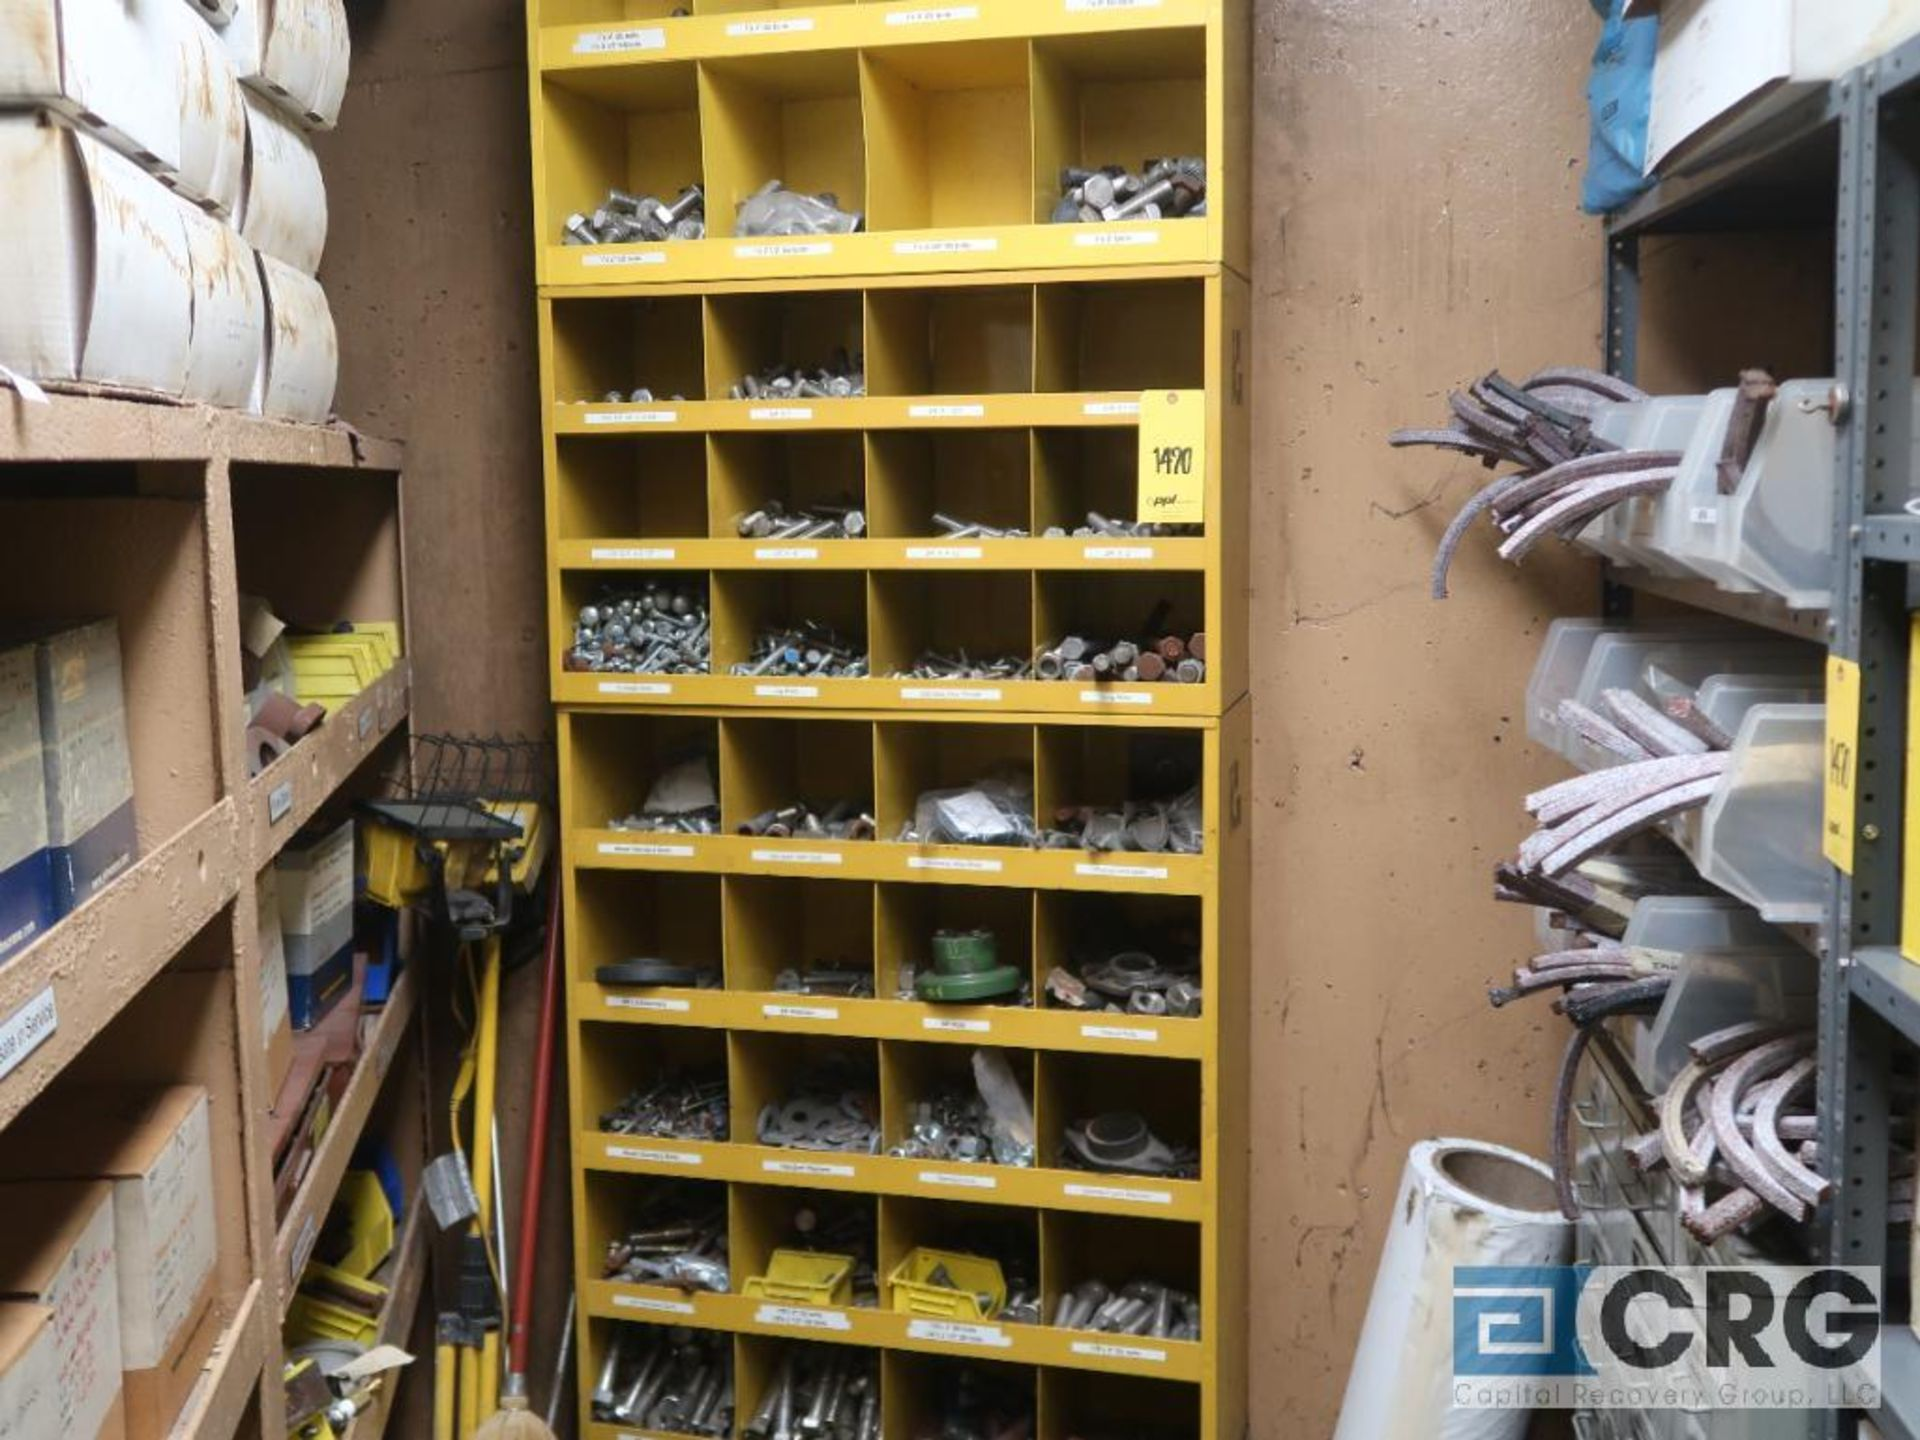 Lot of assorted parts on (4) sections and on wood shelving including motor, guards, housing, pump - Image 16 of 20